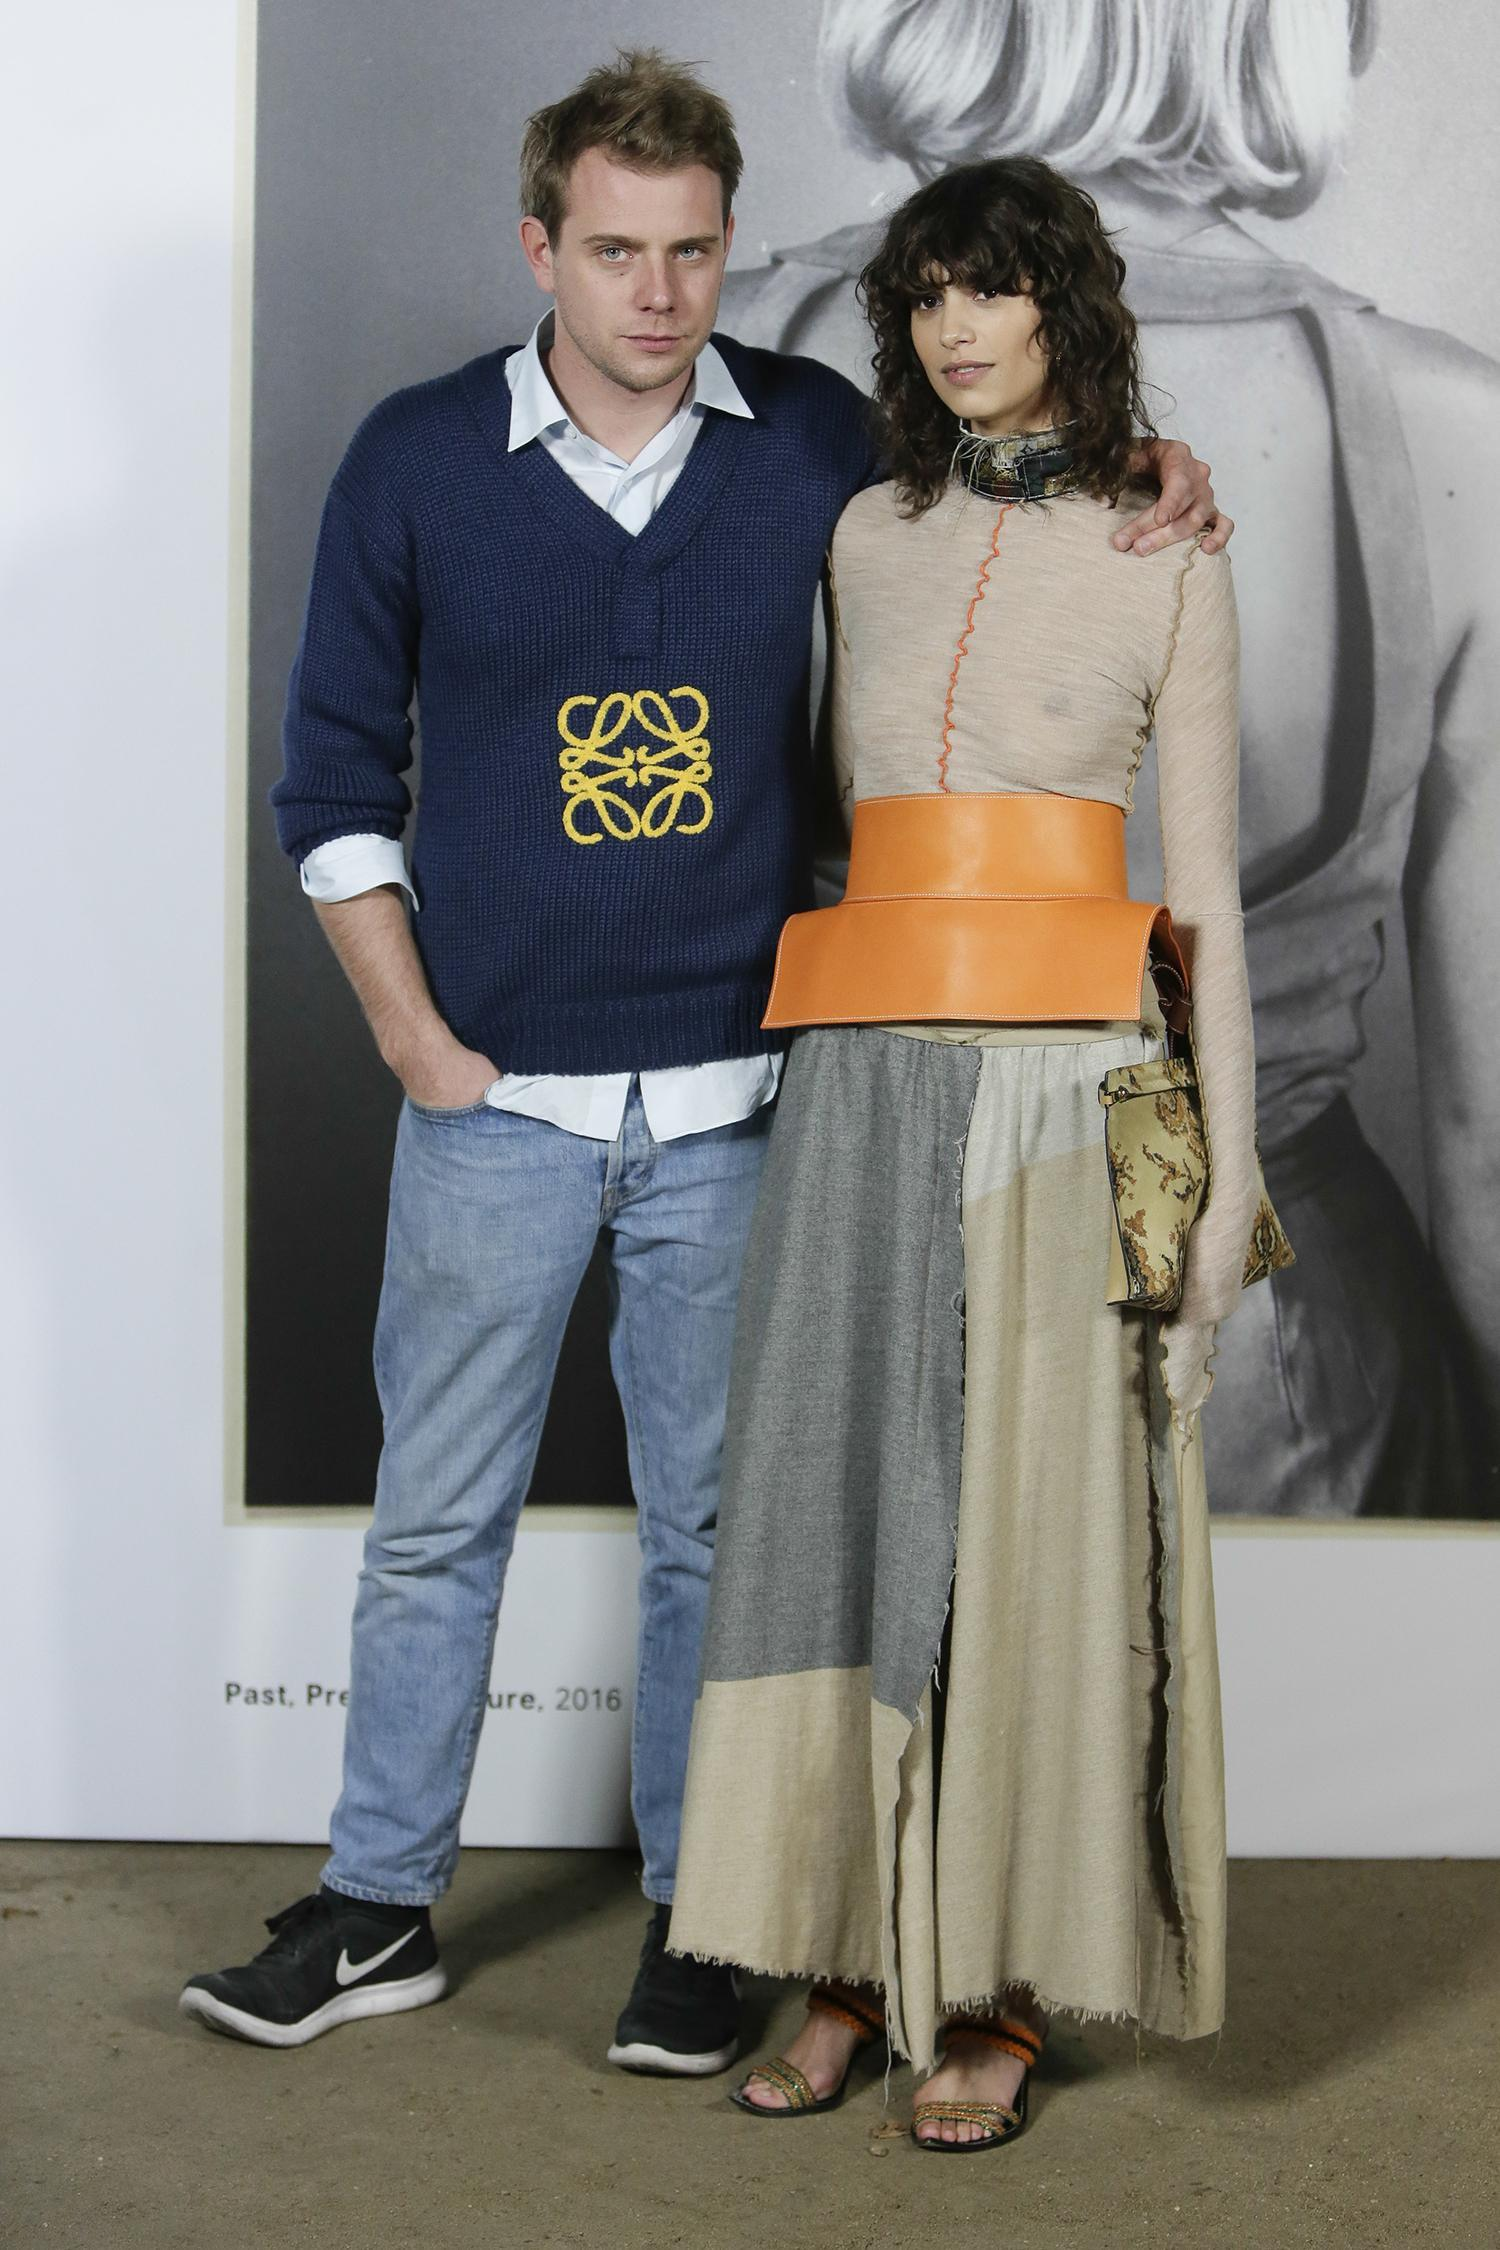 Jonathan Anderson y Steffy Argelich during the inauguration of the exhibition Loewe in Madrid on Thursday 17 November 2016 17/11/2016 Madrid